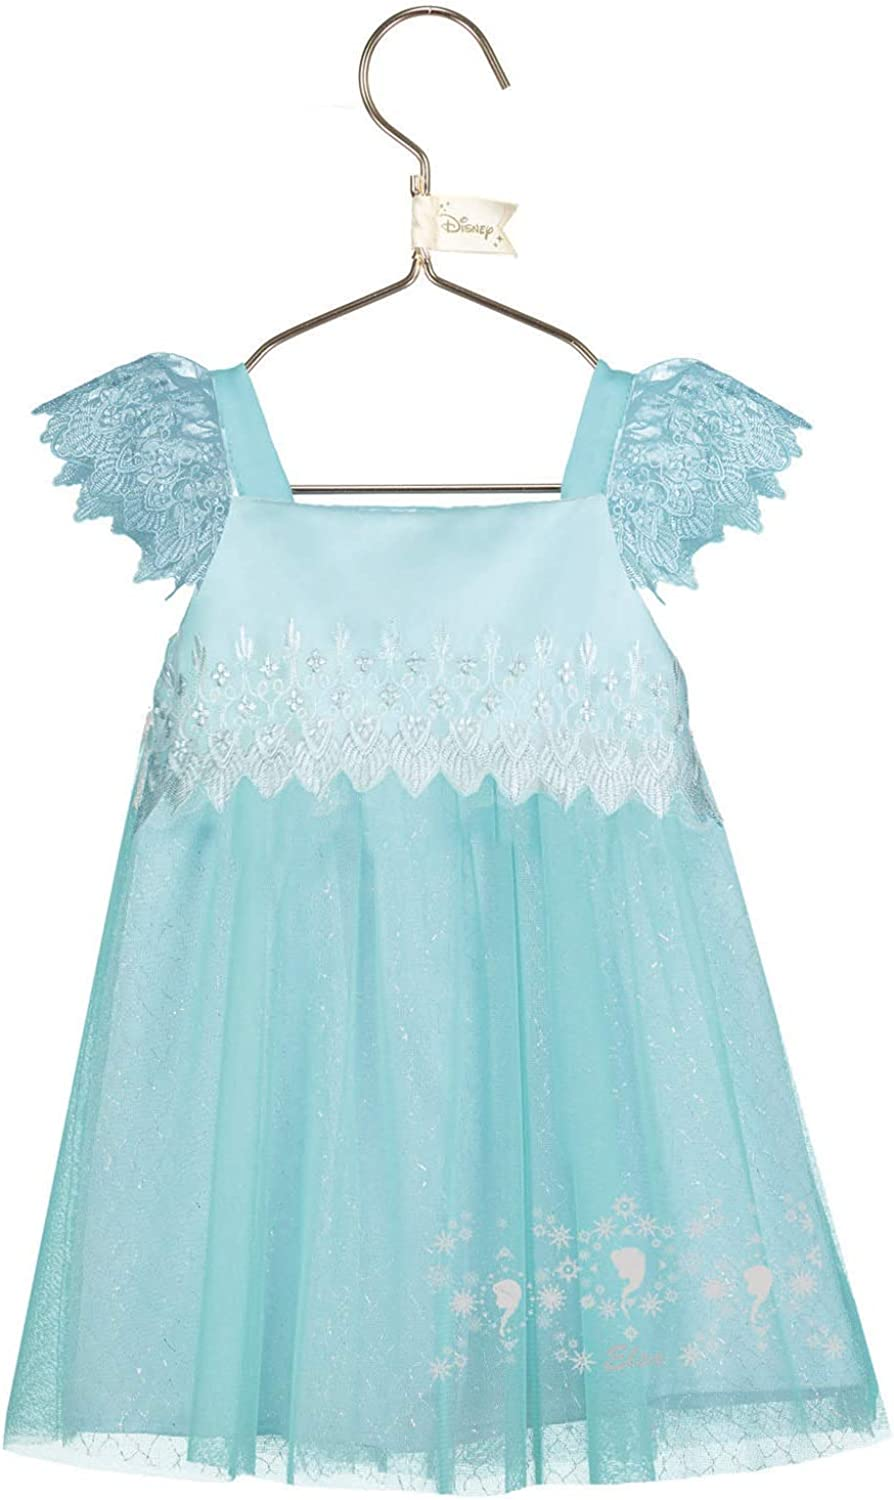 Girls Baby Luxury Disney Boutique Elsa Frozen Party Occasion Dress 3mths-10years